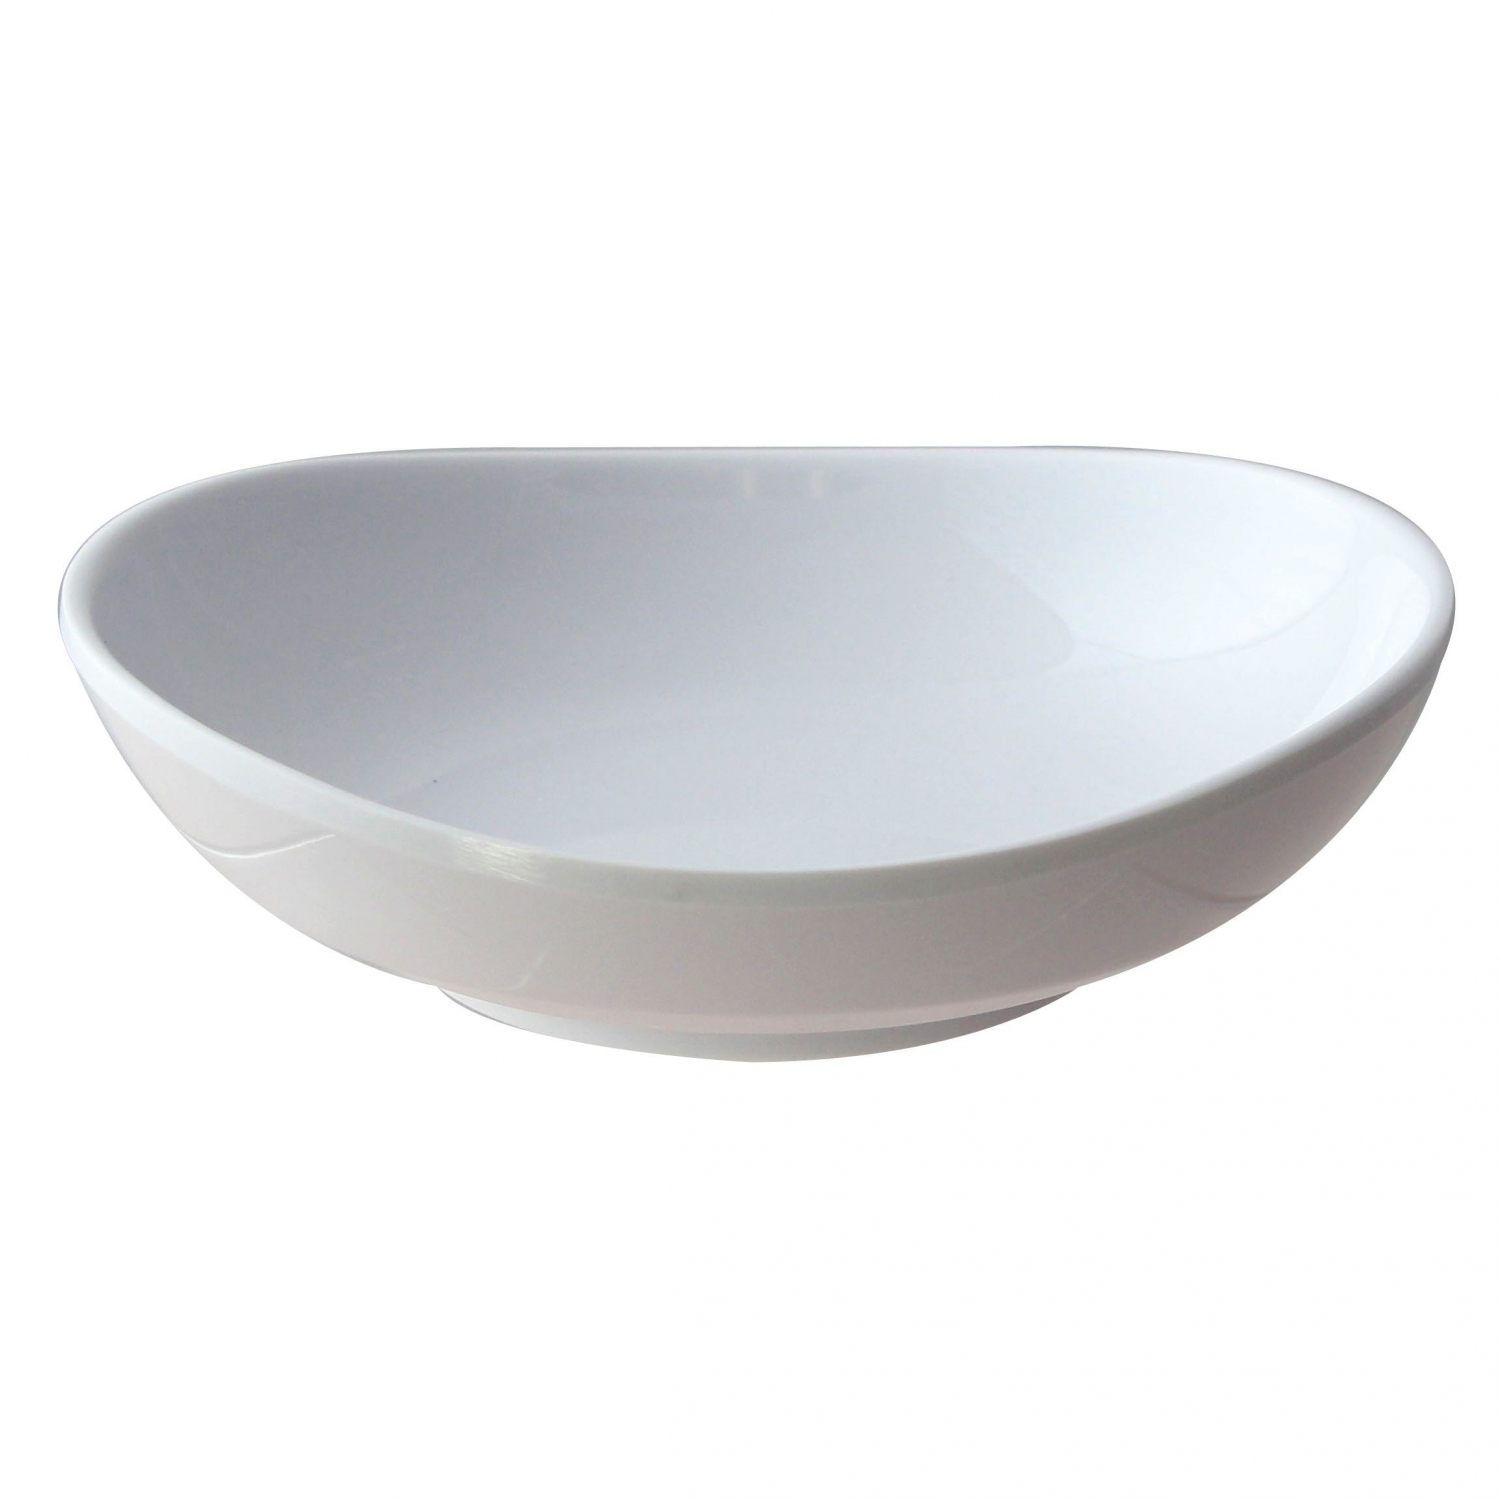 Thunder Group 19055WT Classic White Series Round Saucer 8 oz. - 1 doz